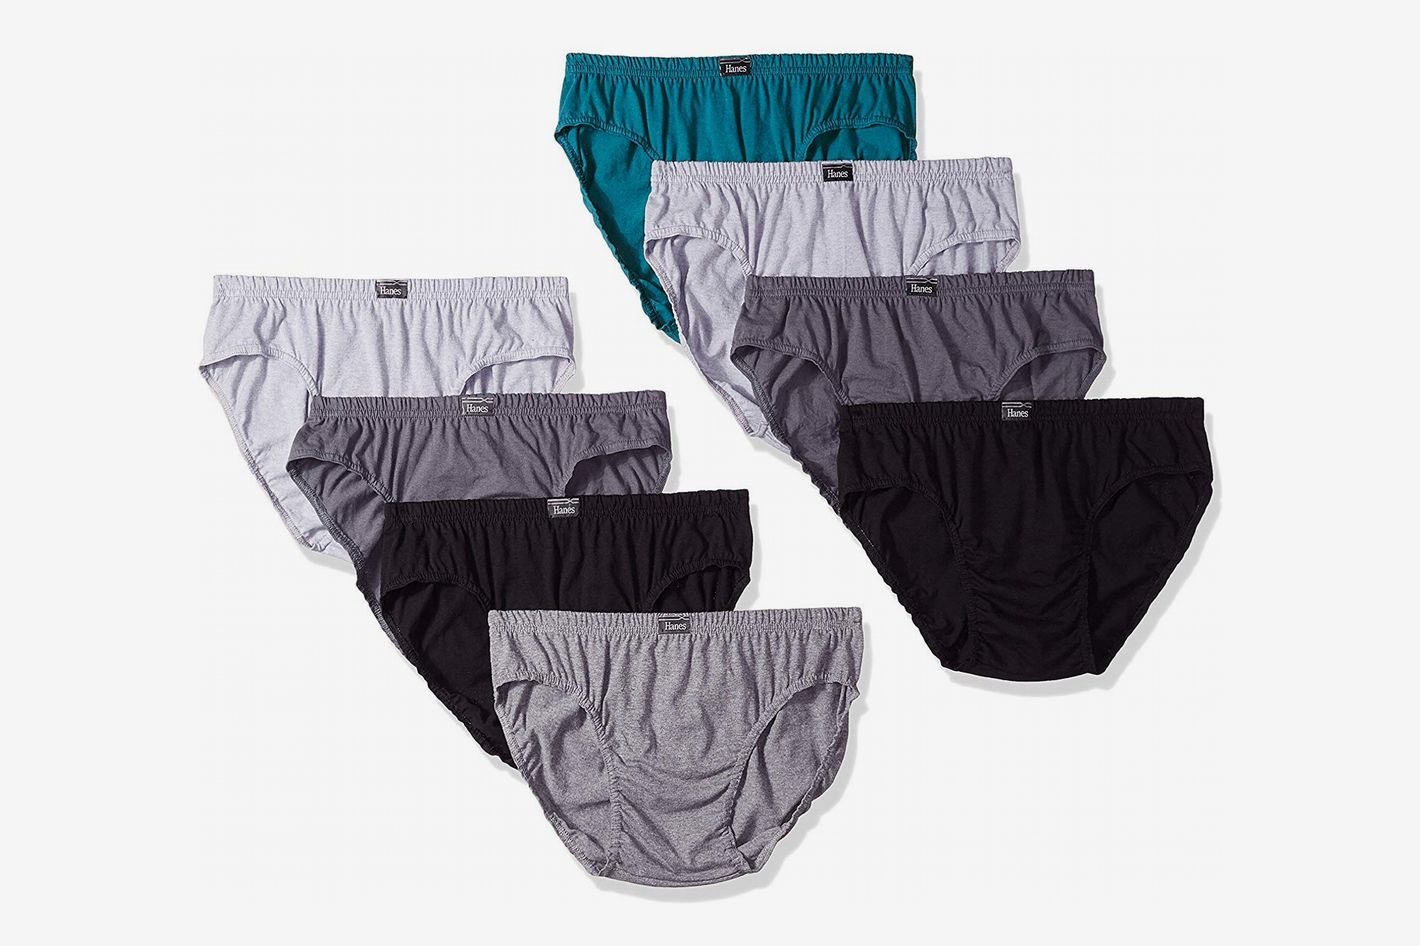 Hanes Men's 8-Pack X-Temp Low Rise Sport Briefs